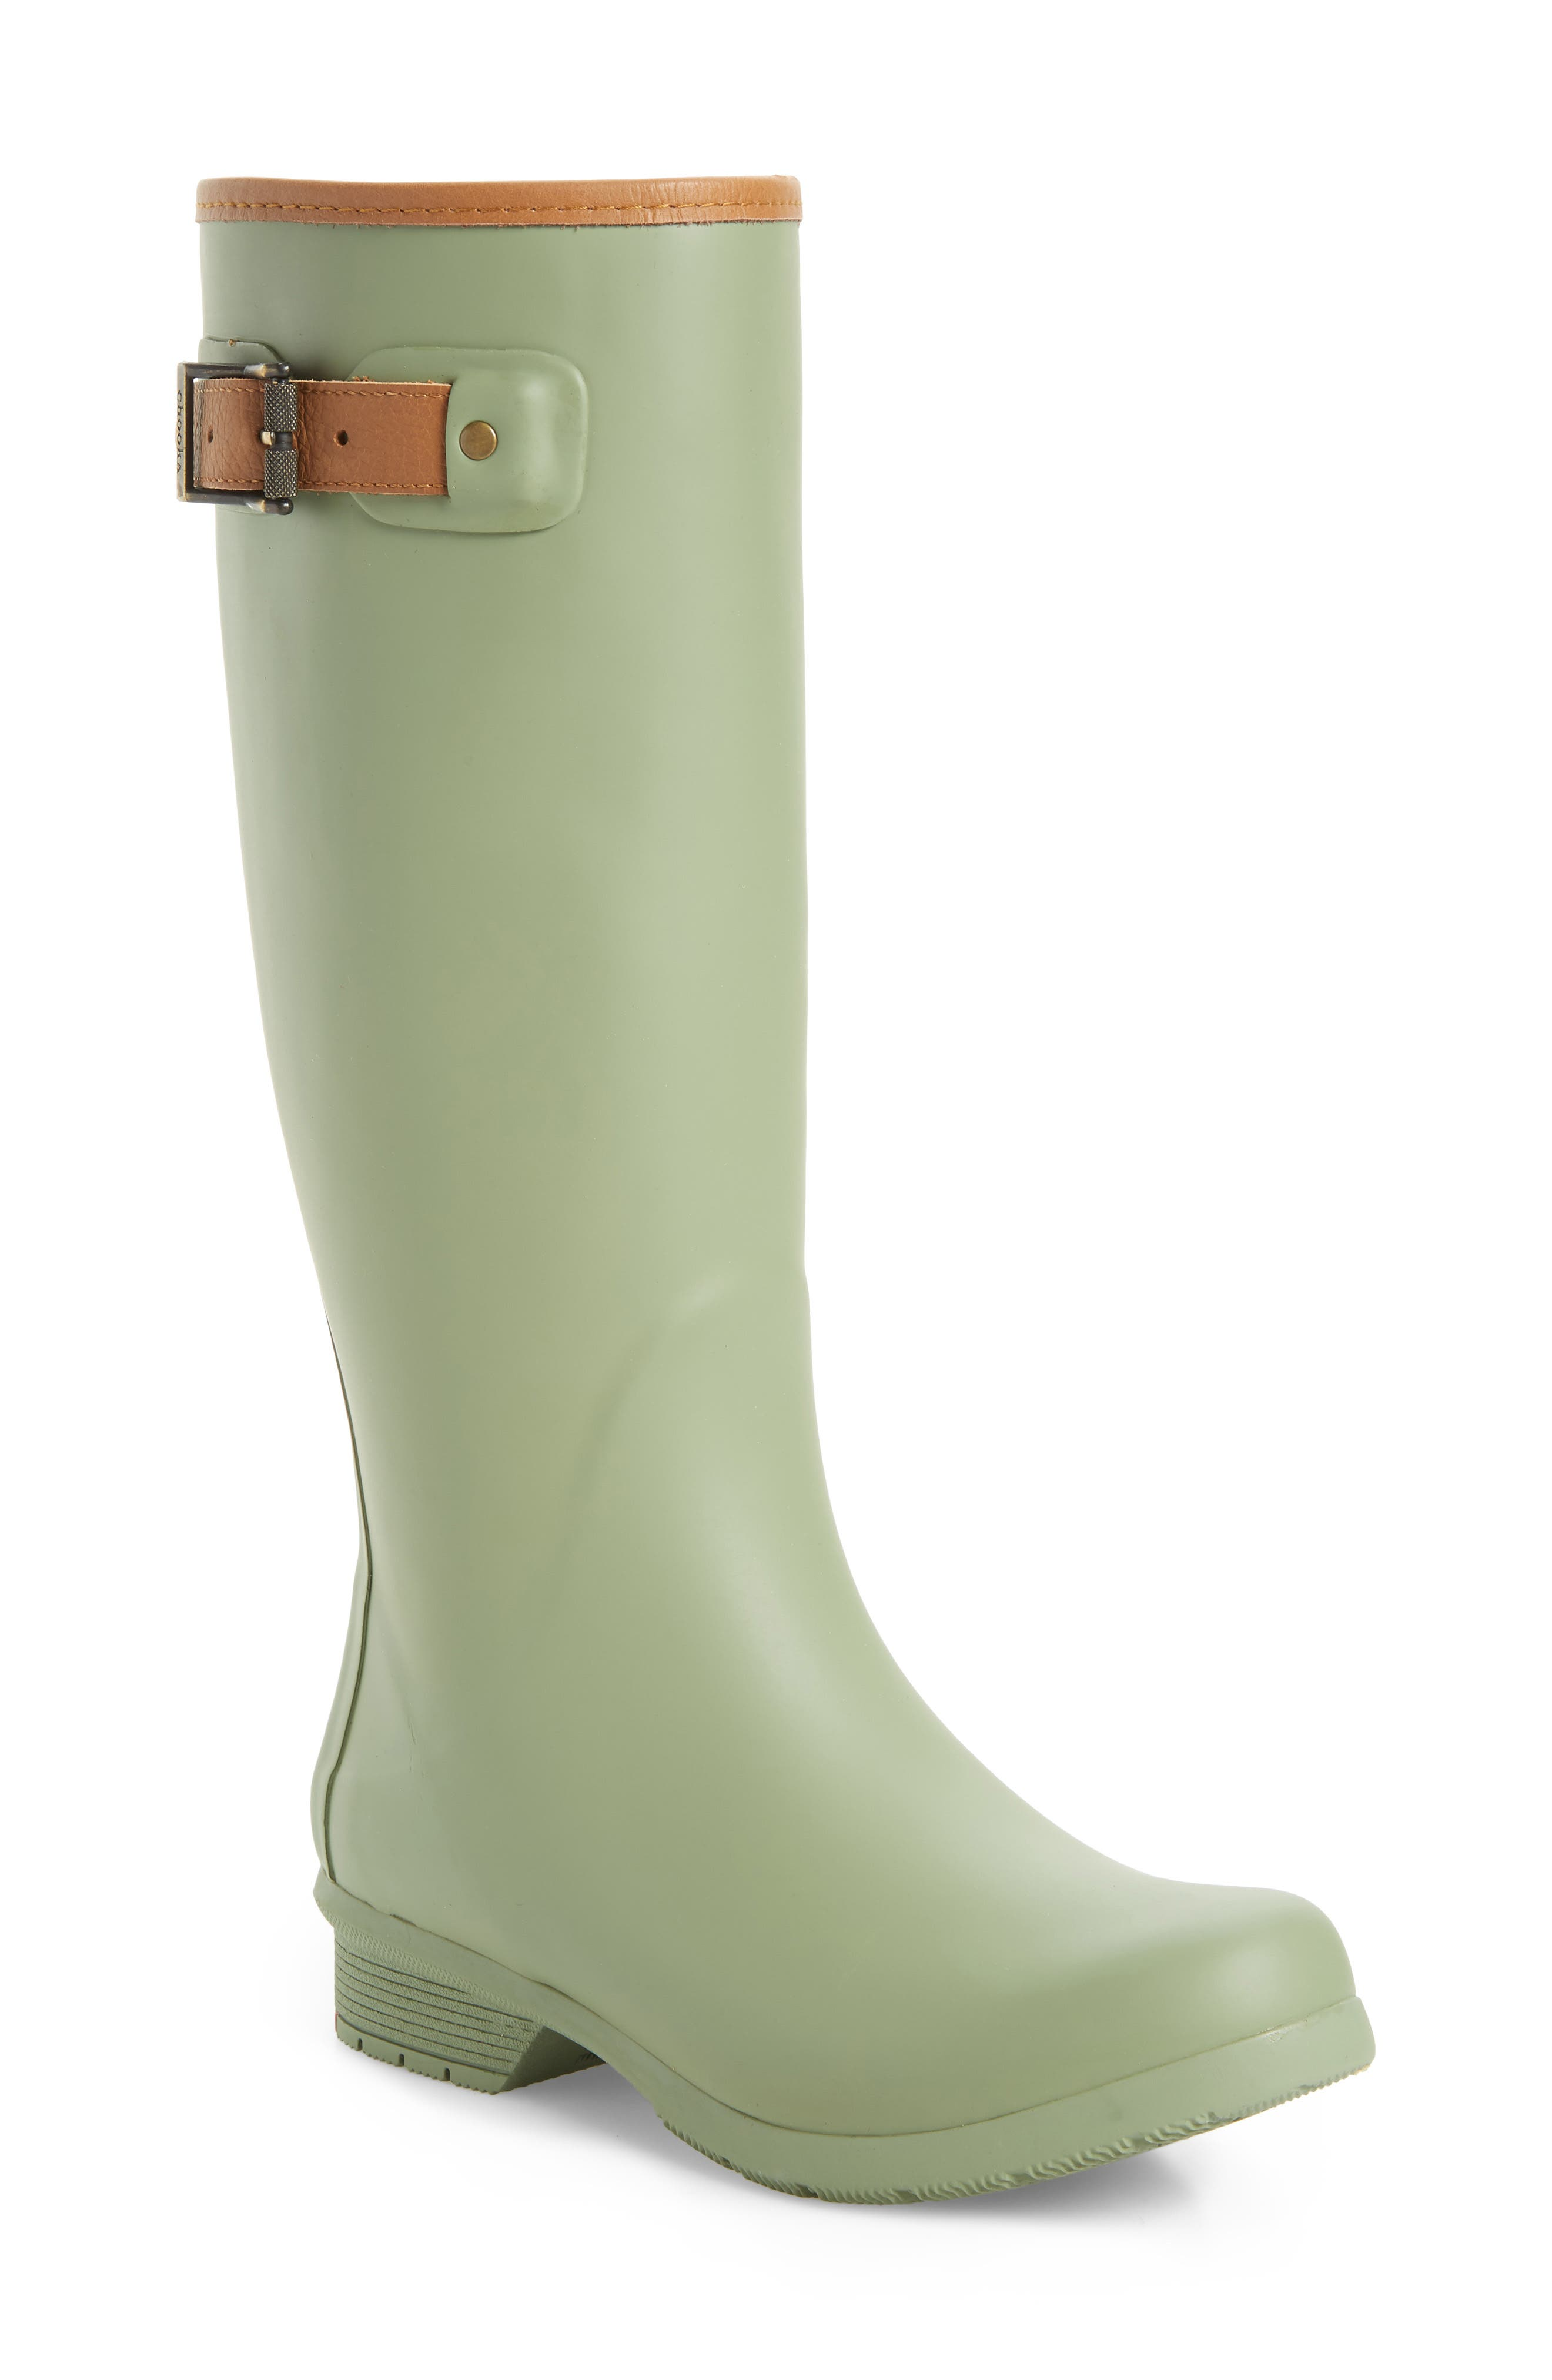 City Tall Rain Boot,                             Main thumbnail 1, color,                             303